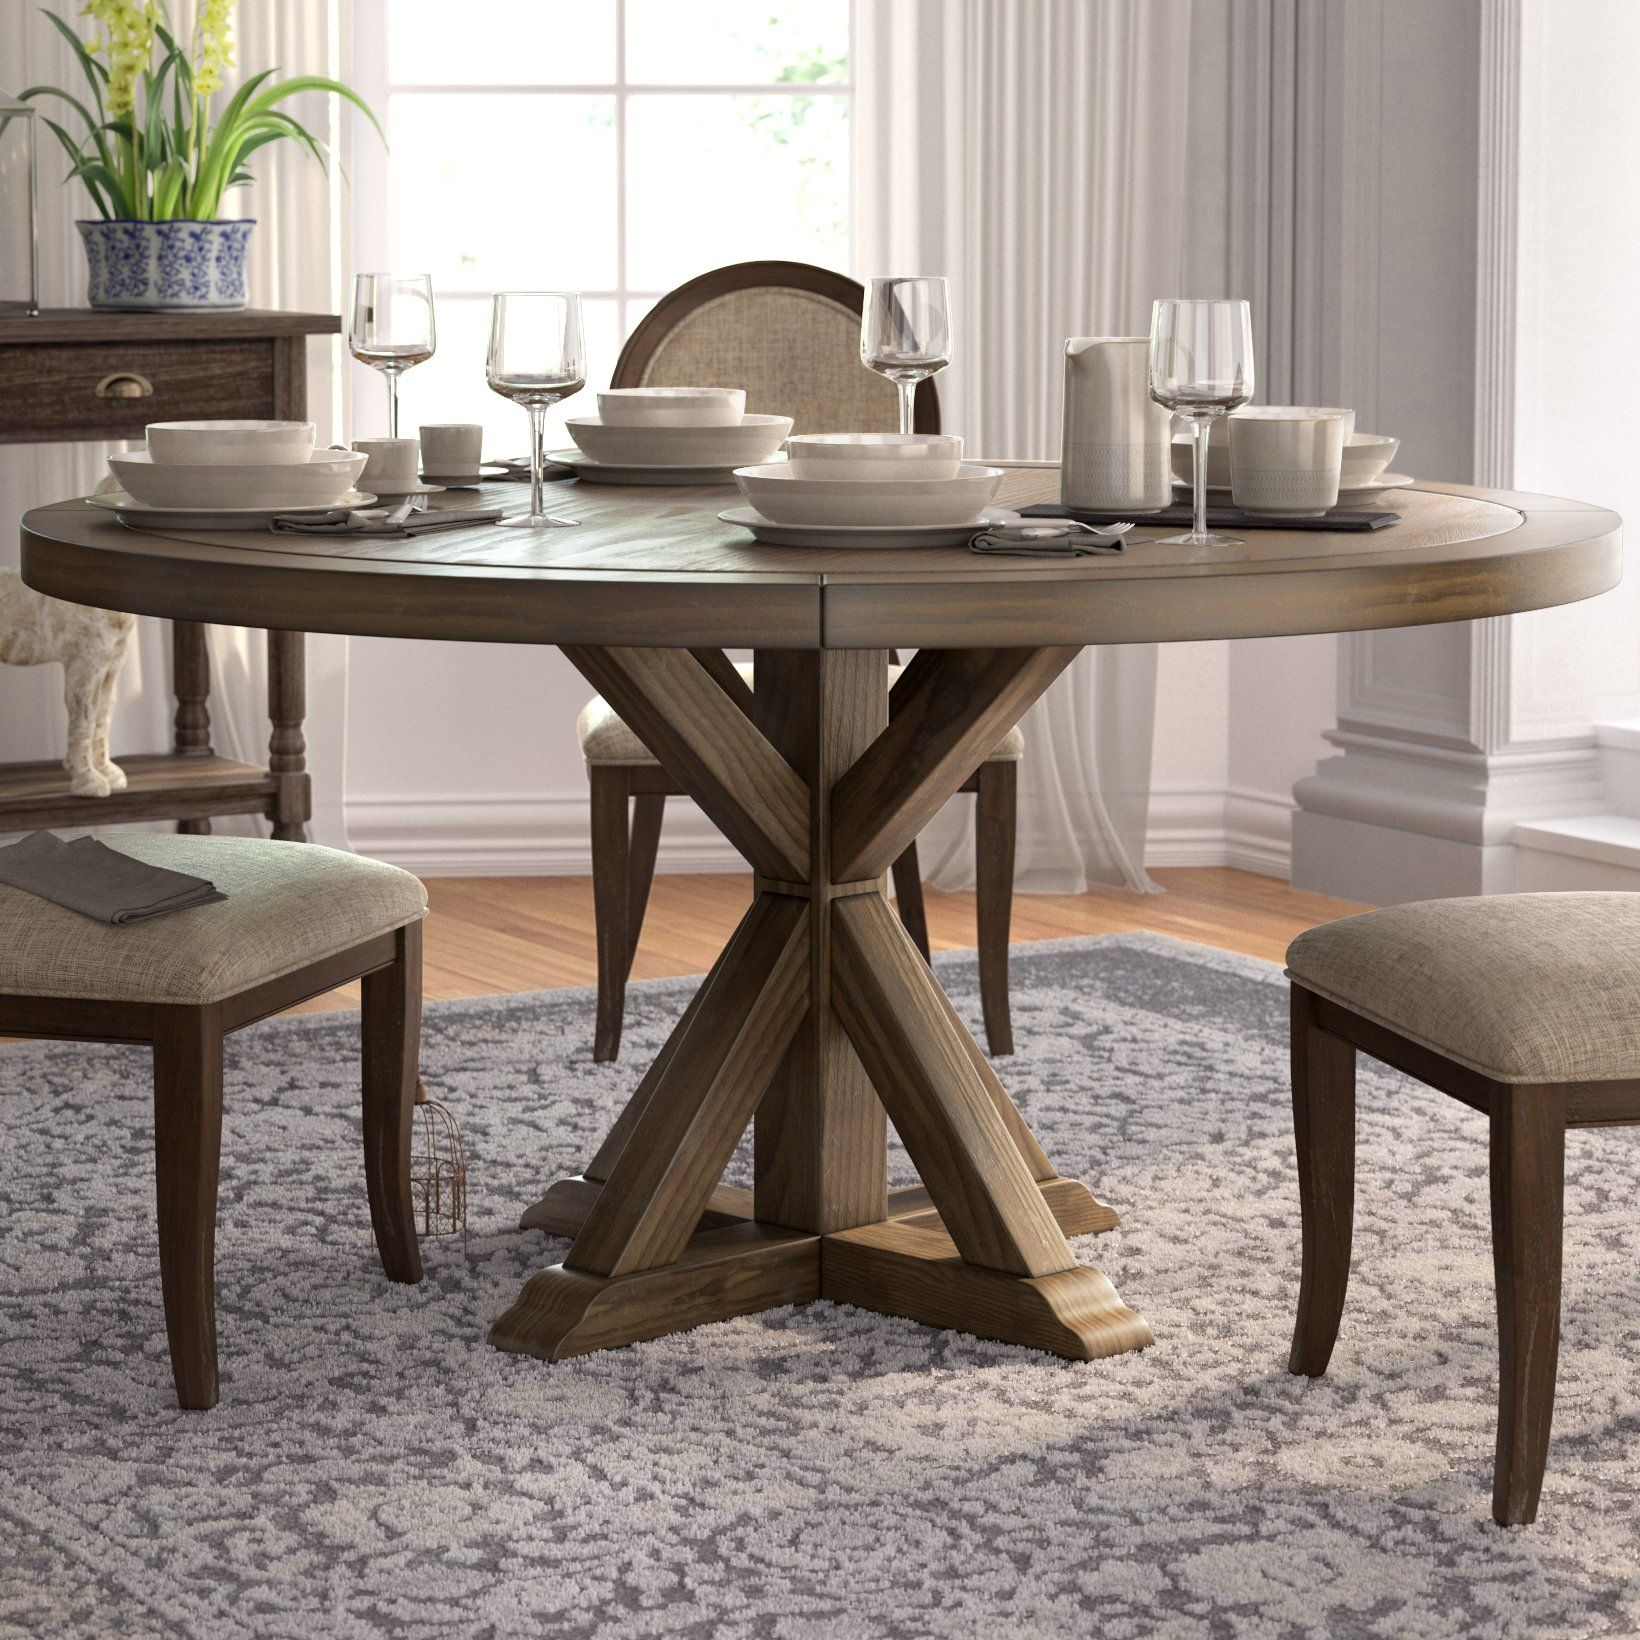 One Allium Way Armancourt Reclaimed Wood Round Dining Table Wayfair Round Dining Room Table Round Wood Dining Table Round Dining Room